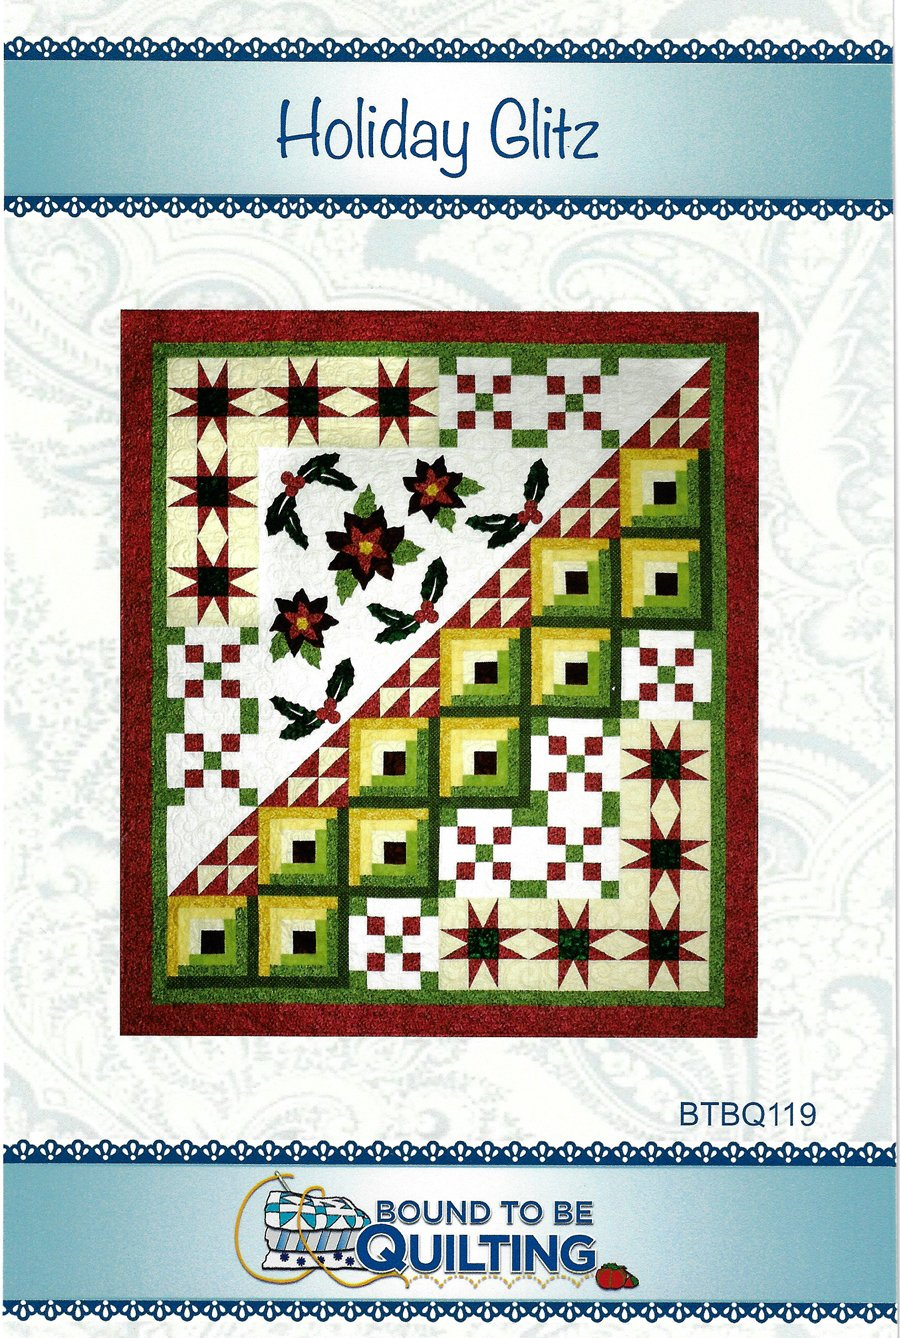 Holiday Glitz<br/>Bound To Be Quilting